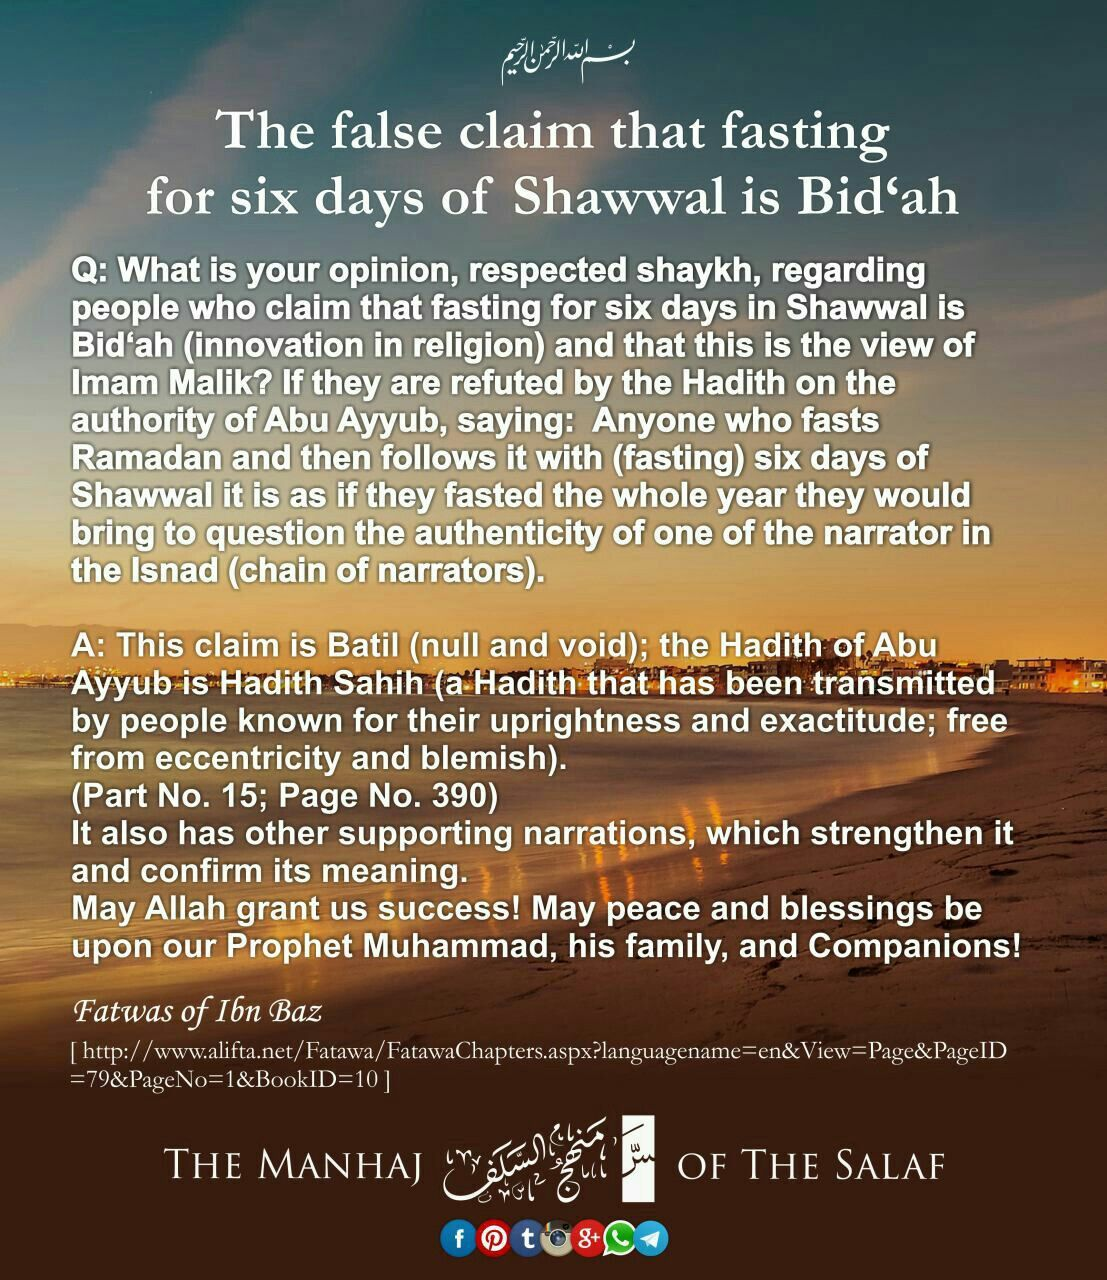 The False Claim That Fasting For Six Days Of Shawwal Is Bid